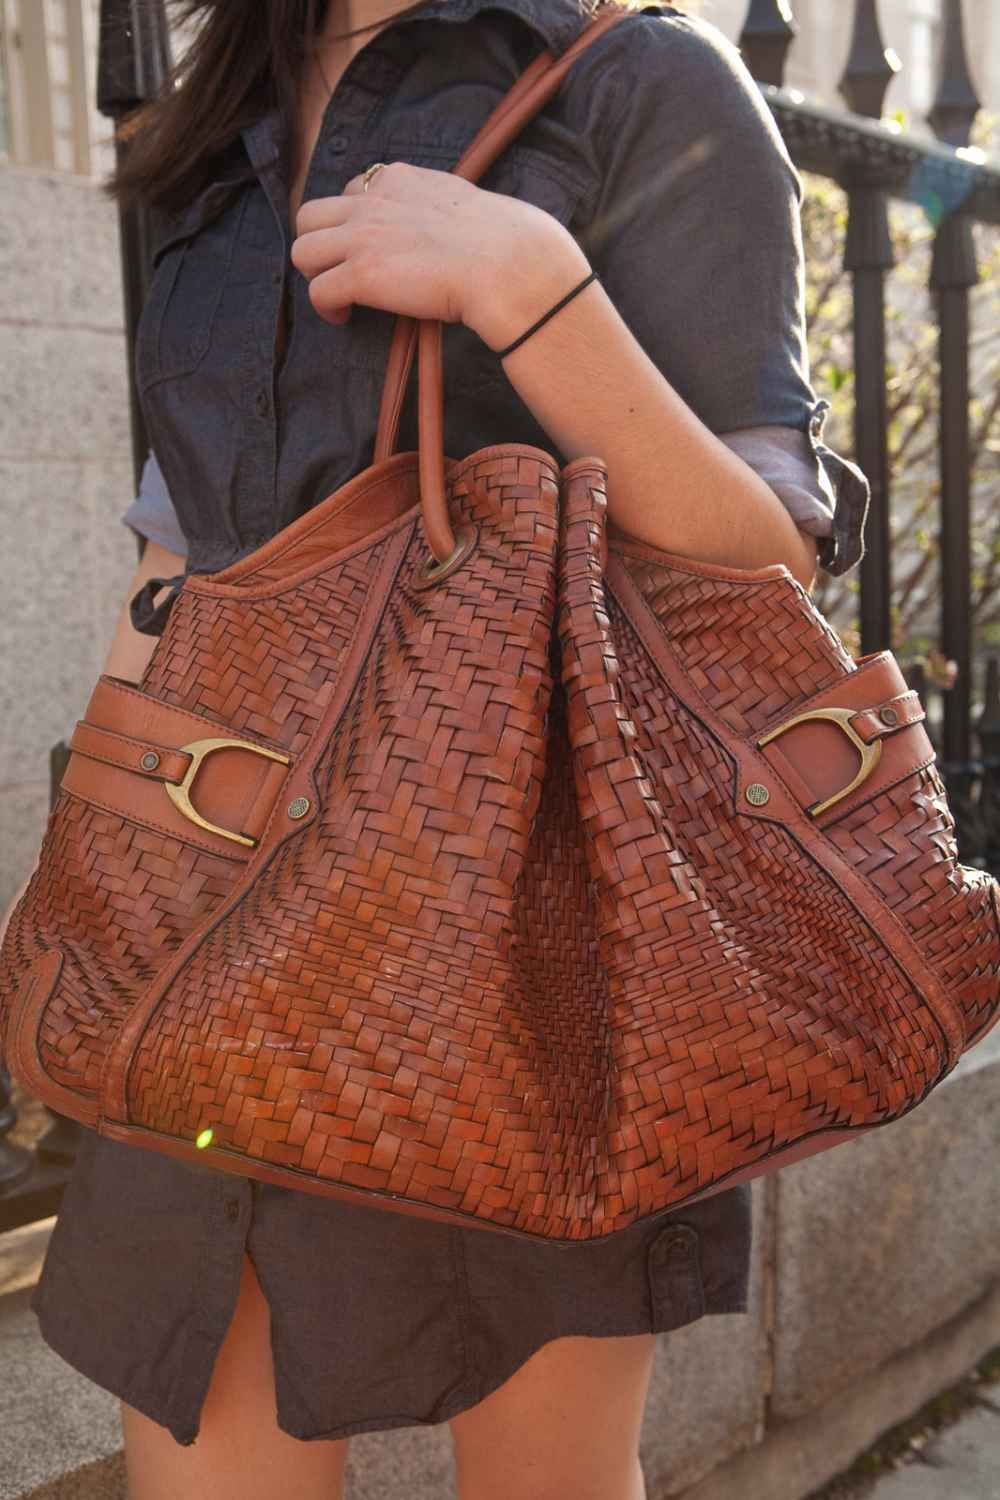 bd4b5e09d68 DC Handbag Pictures - Womens Purses and Bags in Washington   bags ...